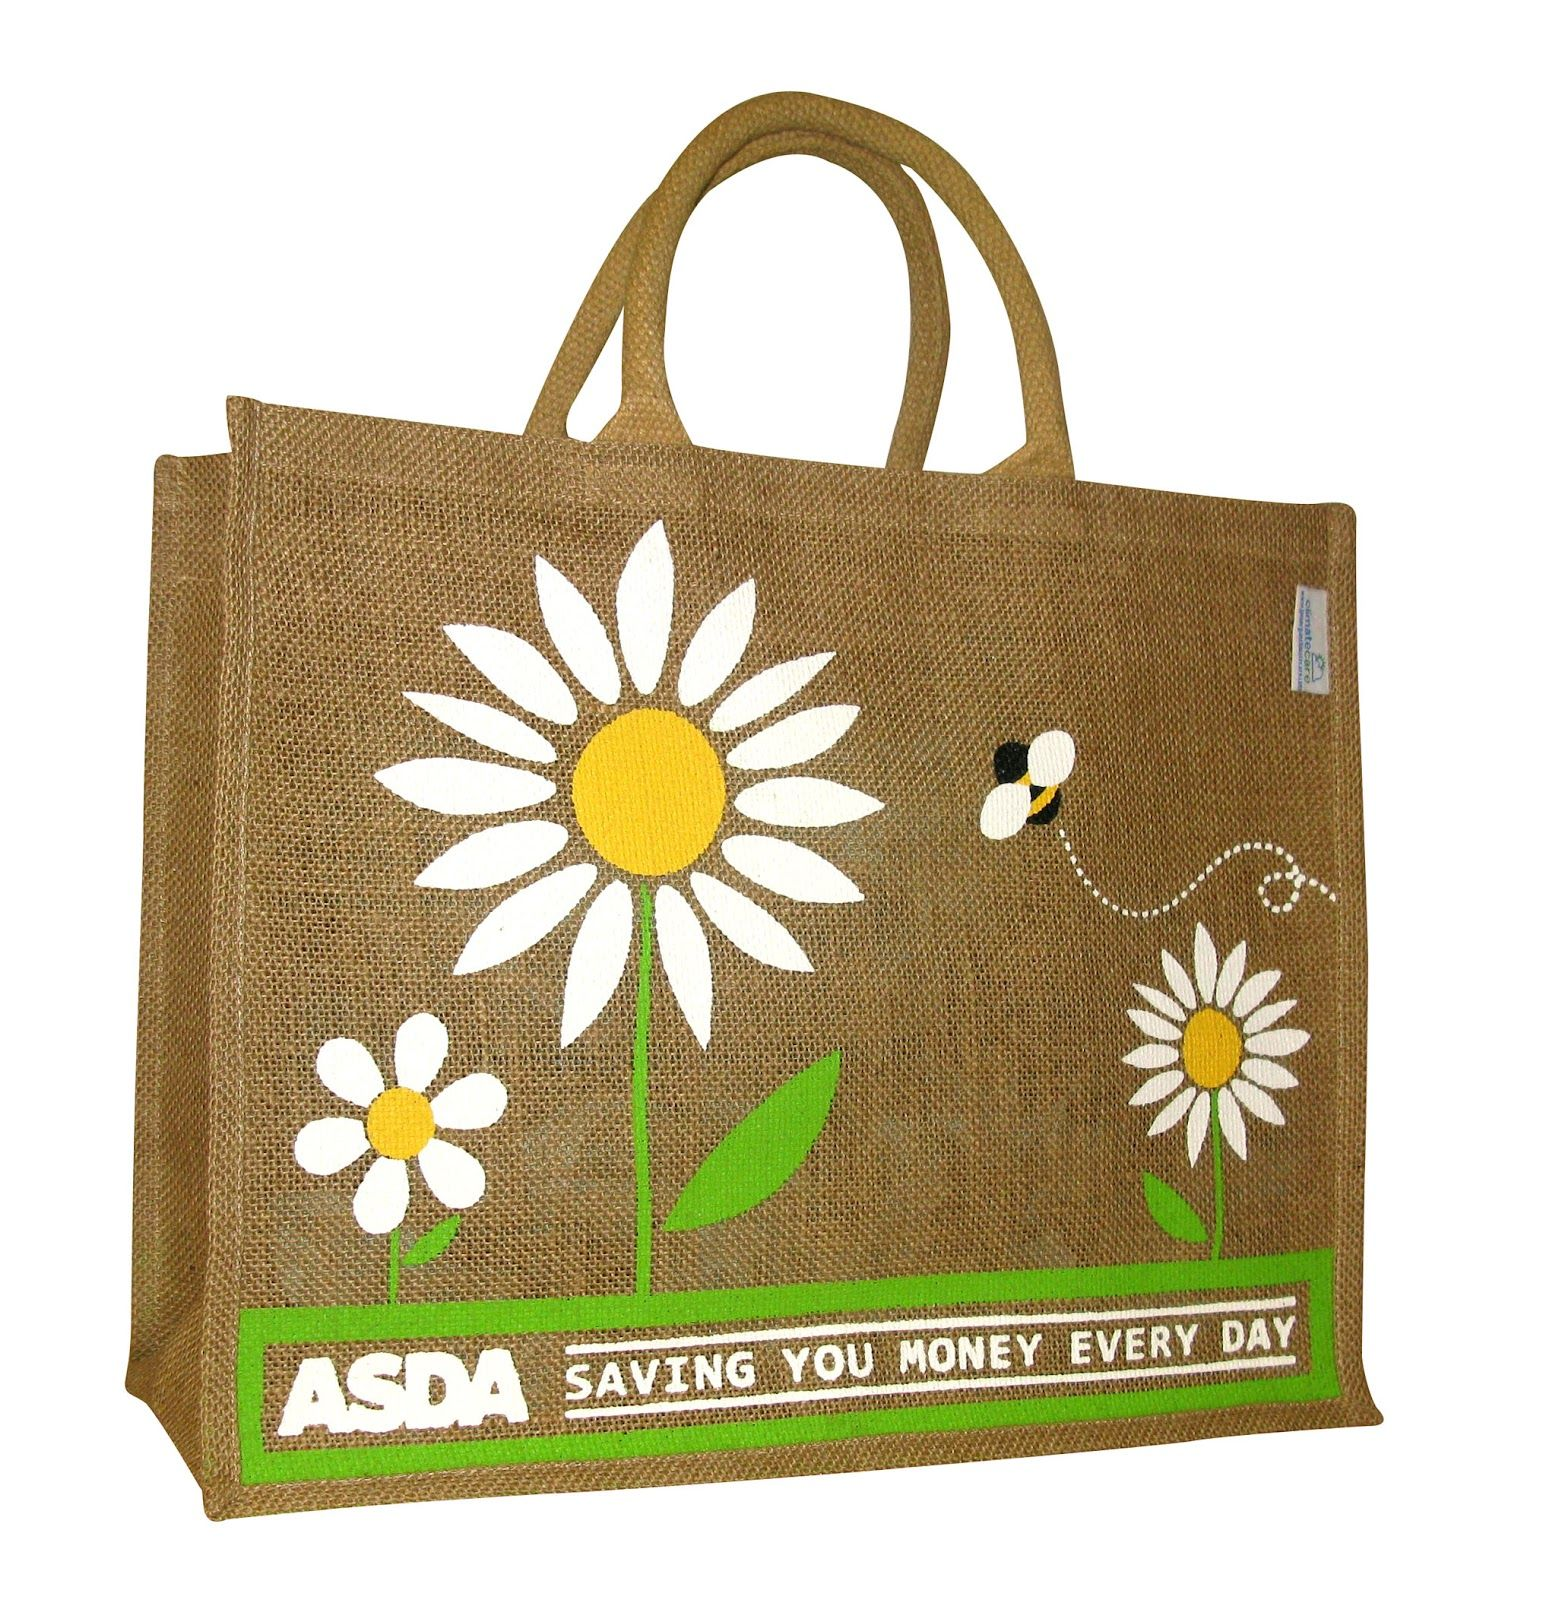 asda shopping bags - Google Search | Shopping bags ...